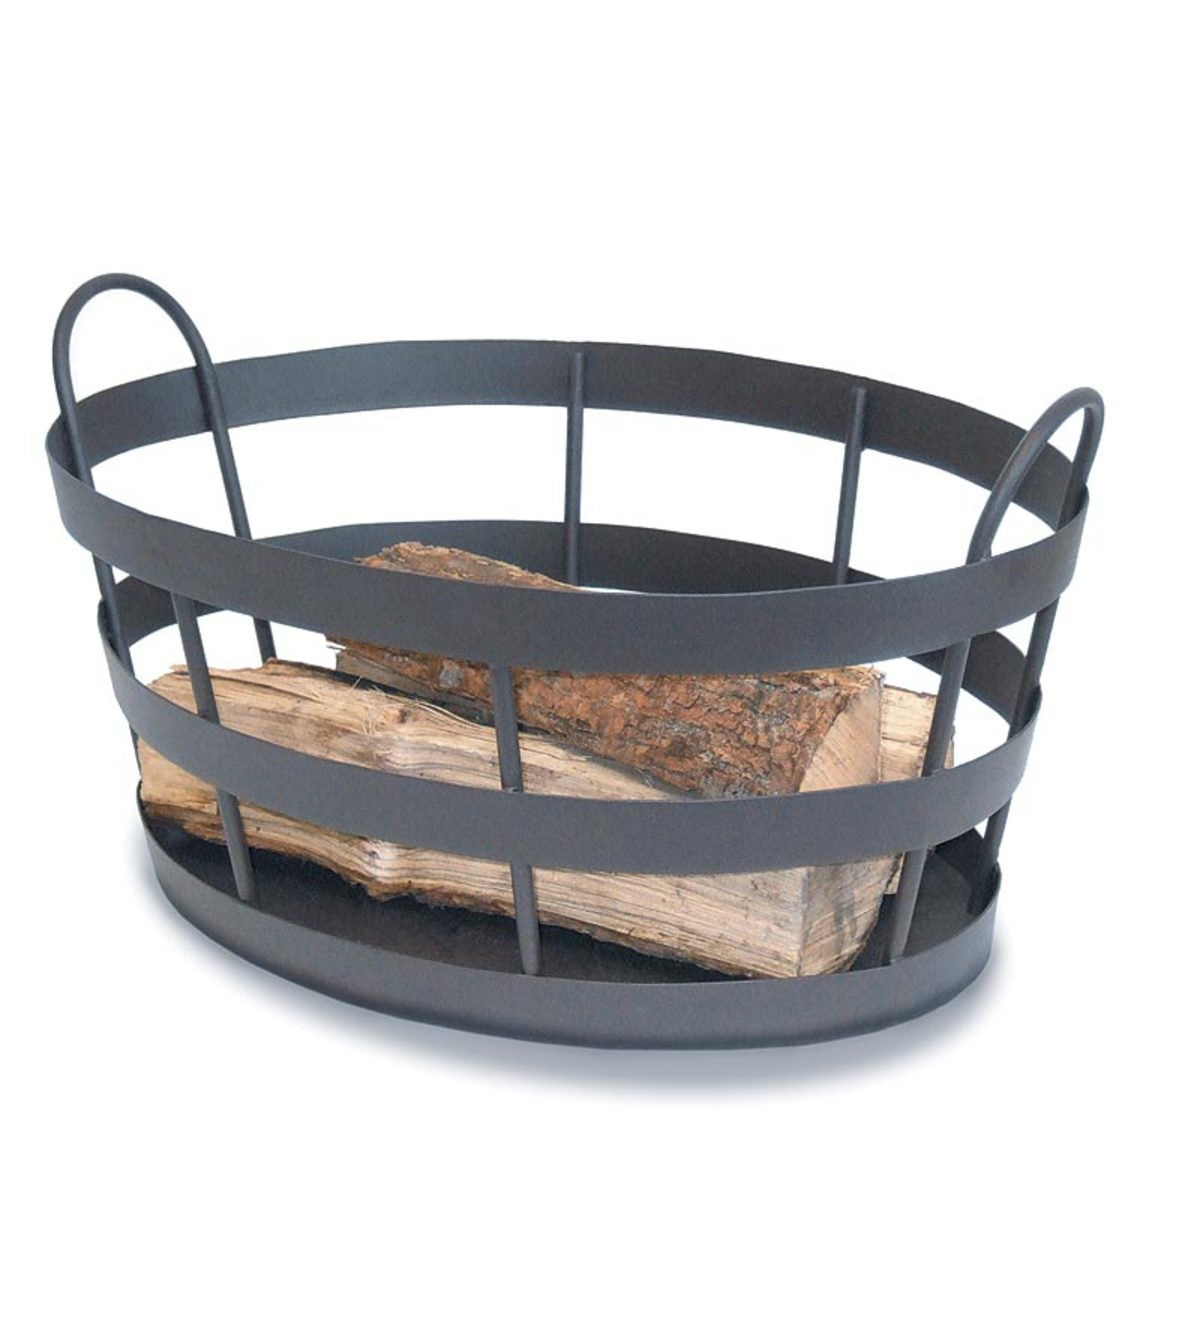 Wrought Iron Craftsman Shaker-Style Indoor/Outdoor Log Bin